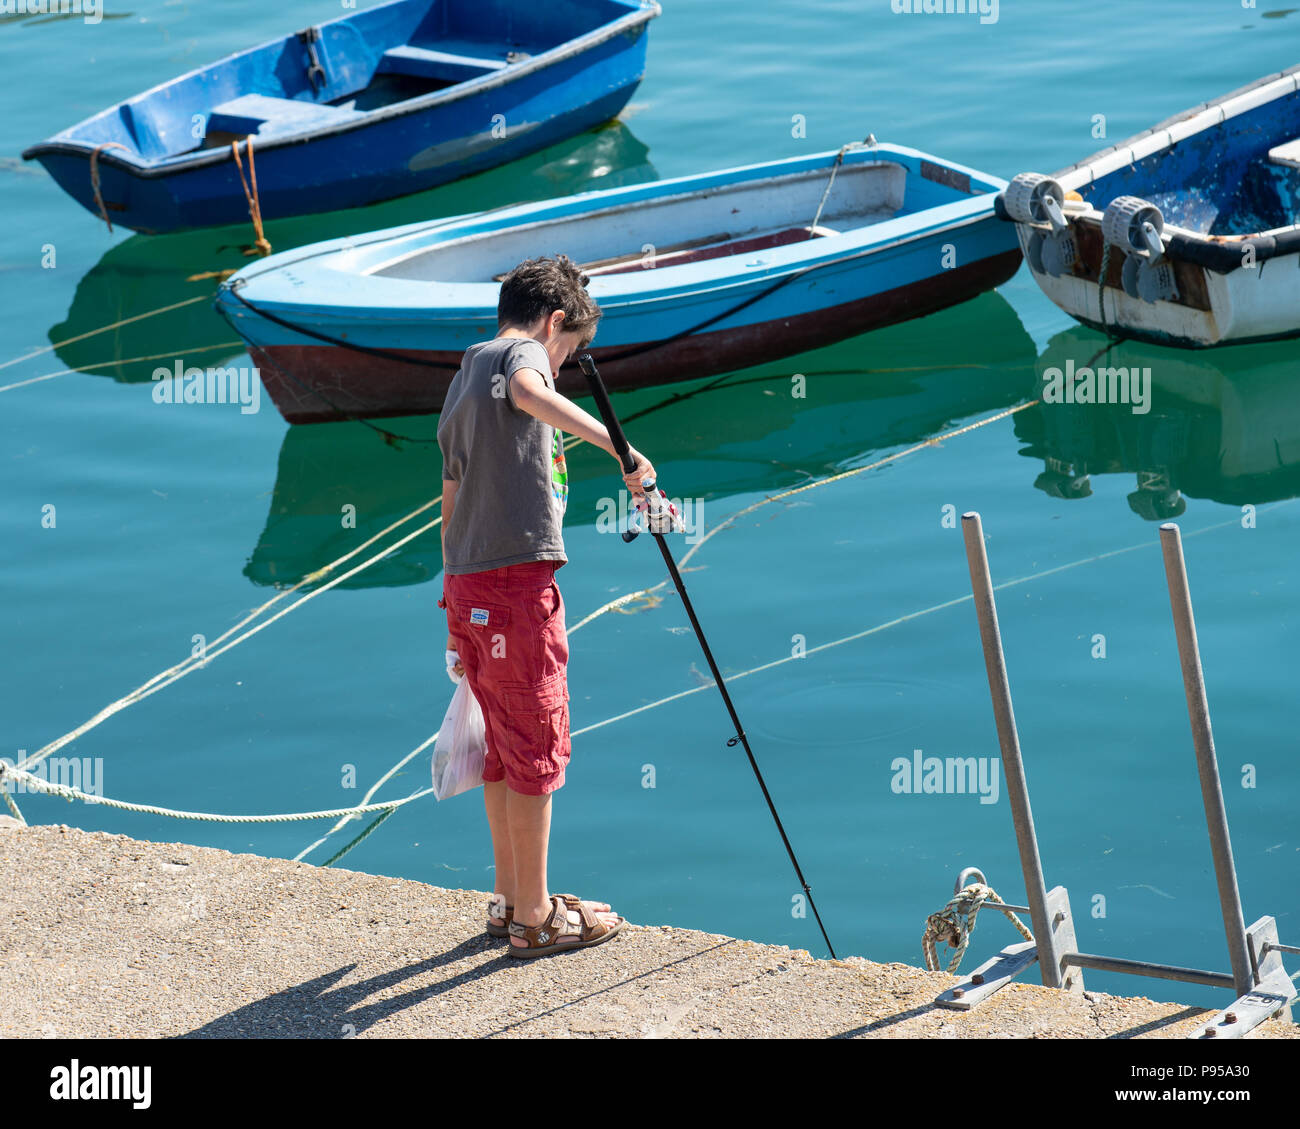 Lyme Regis, Dorset, UK. 15th July 2018.  UK Weather: A very hot and sunny St Swithin's Day in Lyme Regis. A boy with fishing rod.  The scorching hot temperatures are set to contune with temperatures reaching 30 degrees in many parts of the UK again today as the heatwave continues. Credit: Celia McMahon/Alamy Live News. - Stock Image